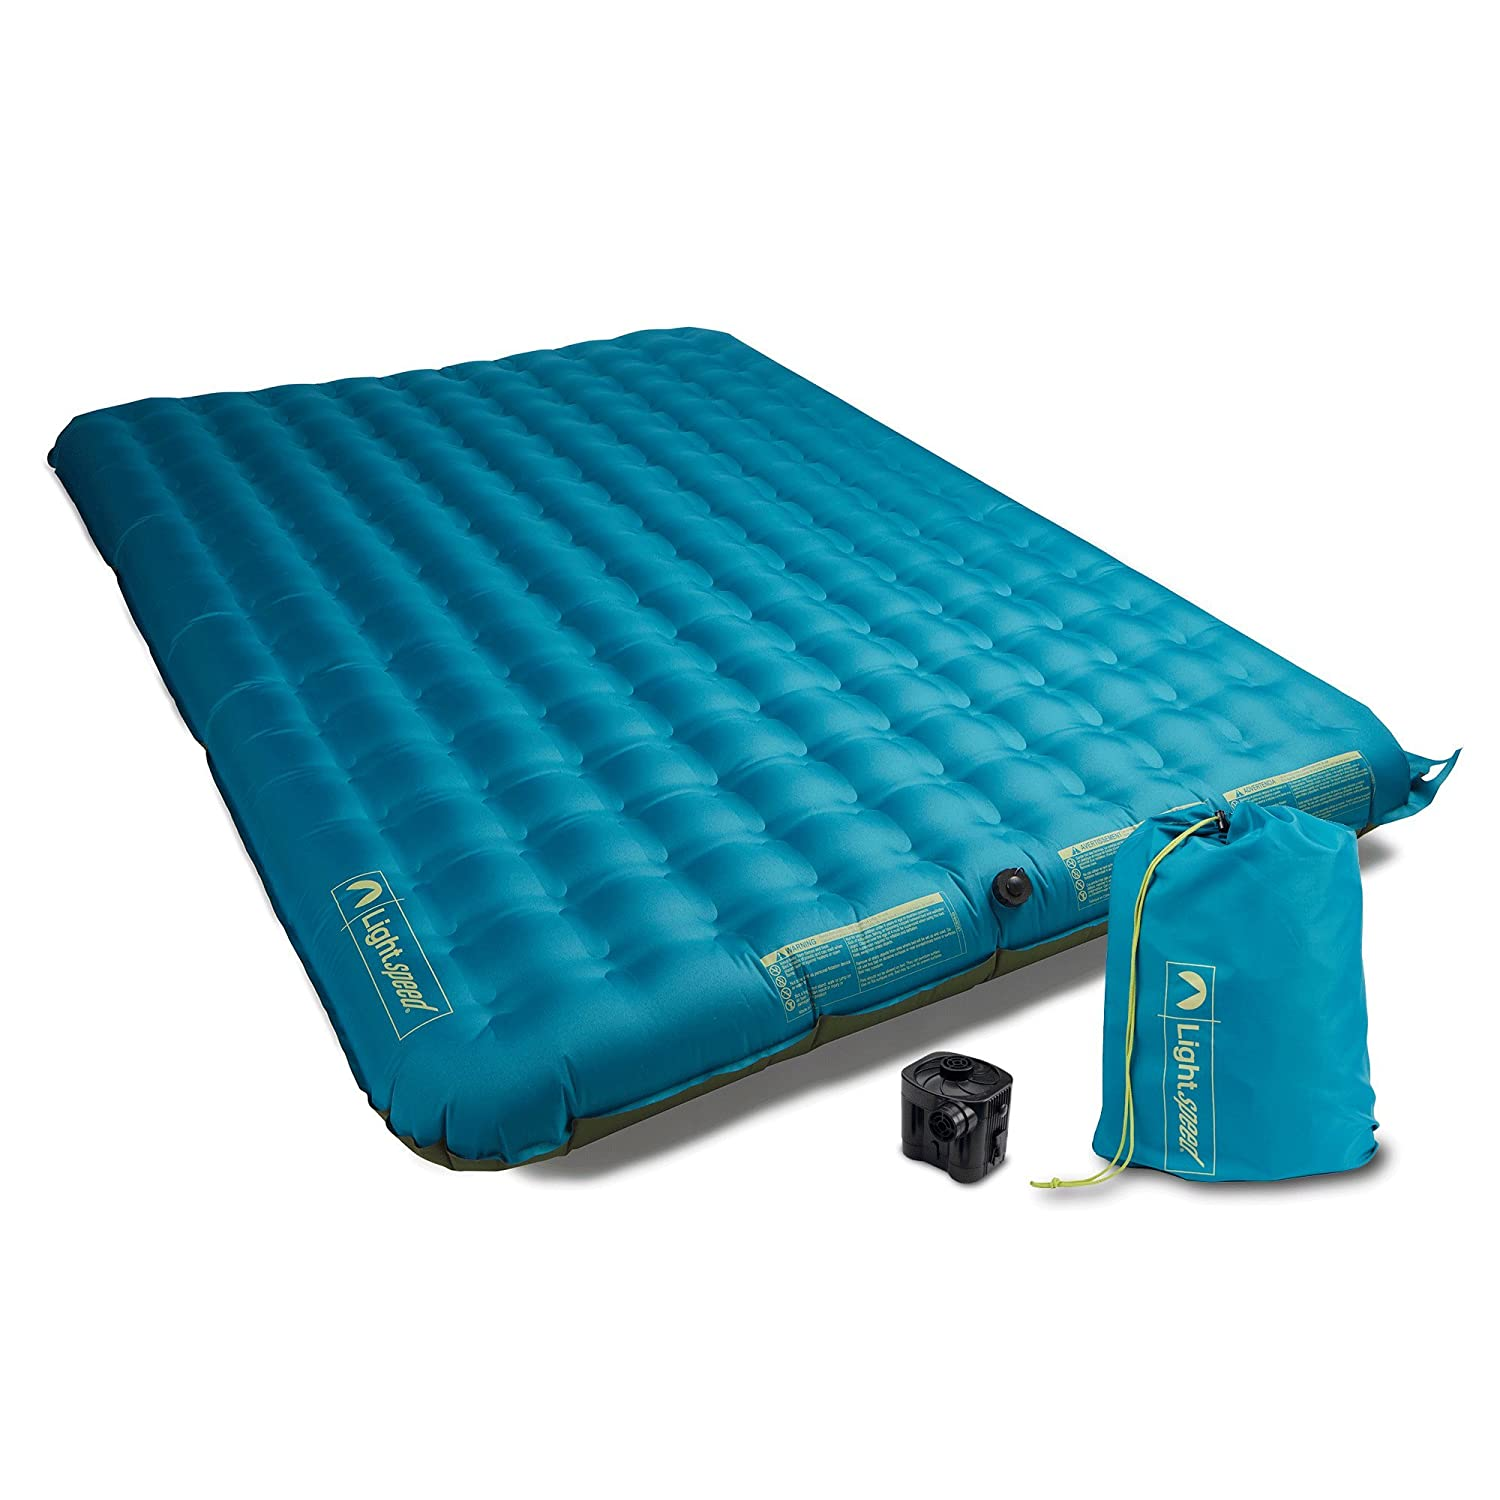 Lightspeed Outdoors 2 Person PVC-Free Air Bed Mattress for Camping and Travel 27793-FK